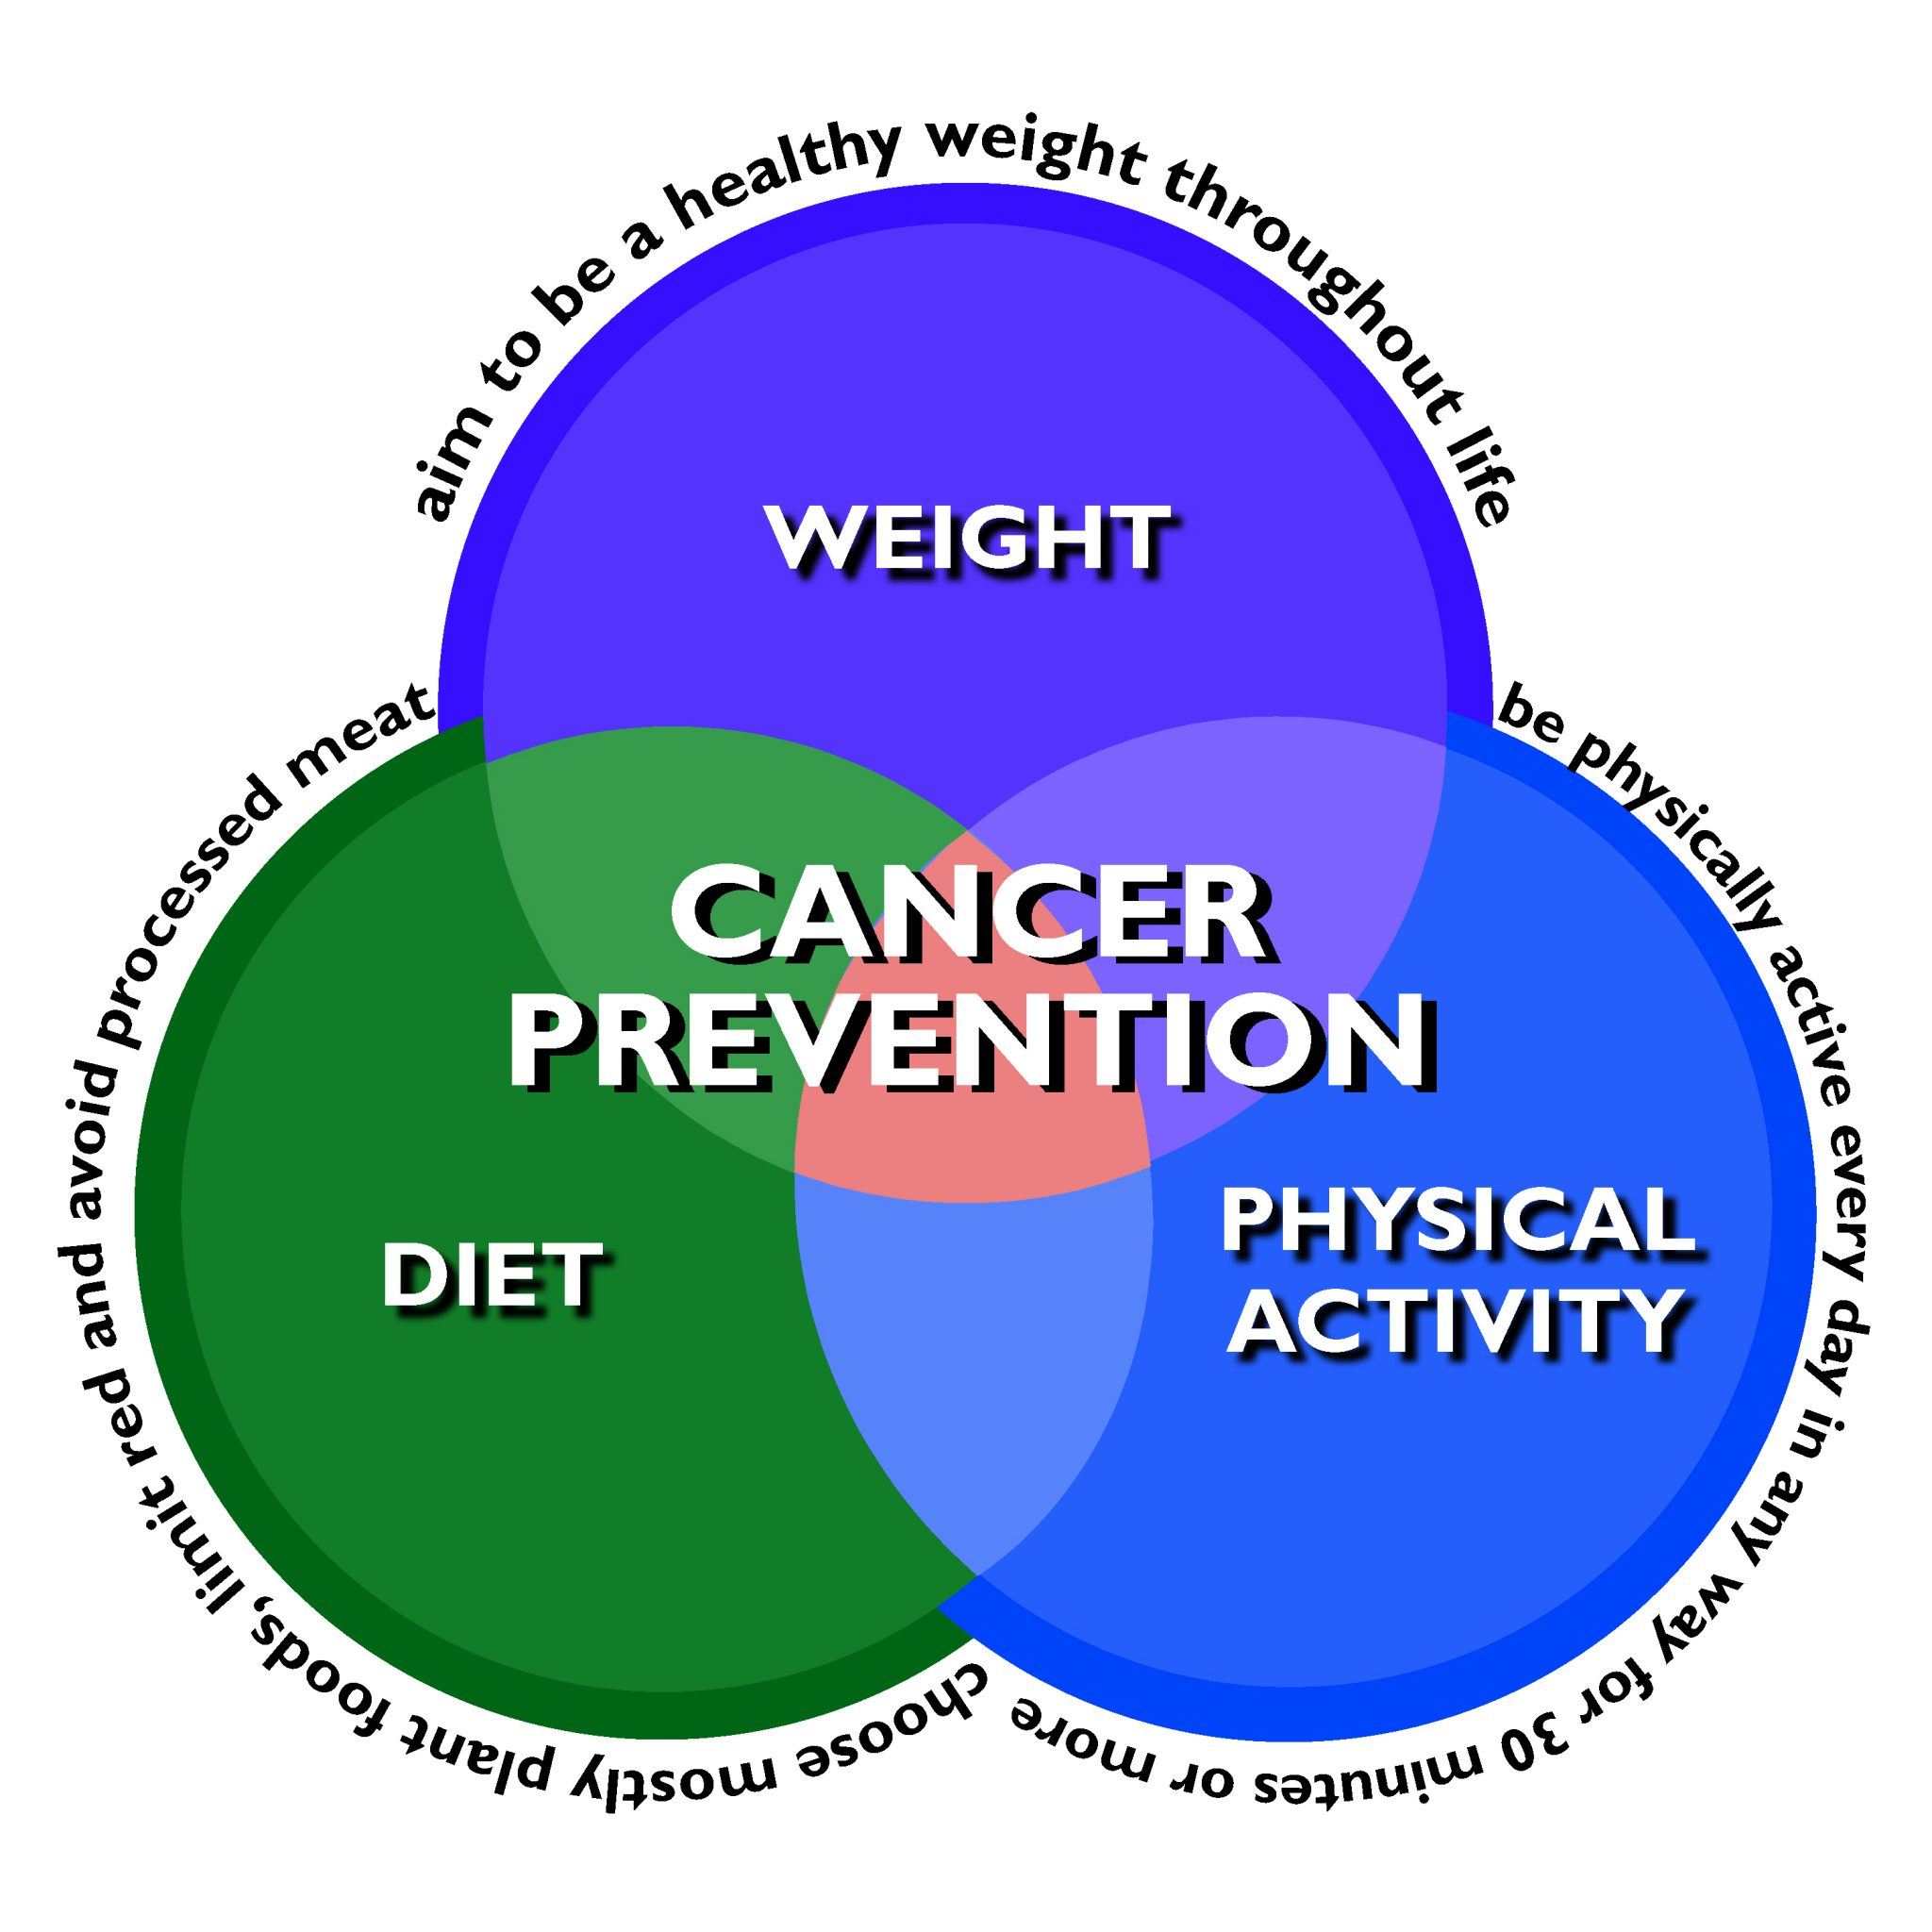 cancer prevention Cancer prevention it is estimated that more than half of the estimated 600,920 cancer deaths that occurred in the united states in 2017 were related to preventable causes, including tobacco use, obesity, exposure to ultraviolet light, and vaccine-preventable infections with cancer-associated pathogens.